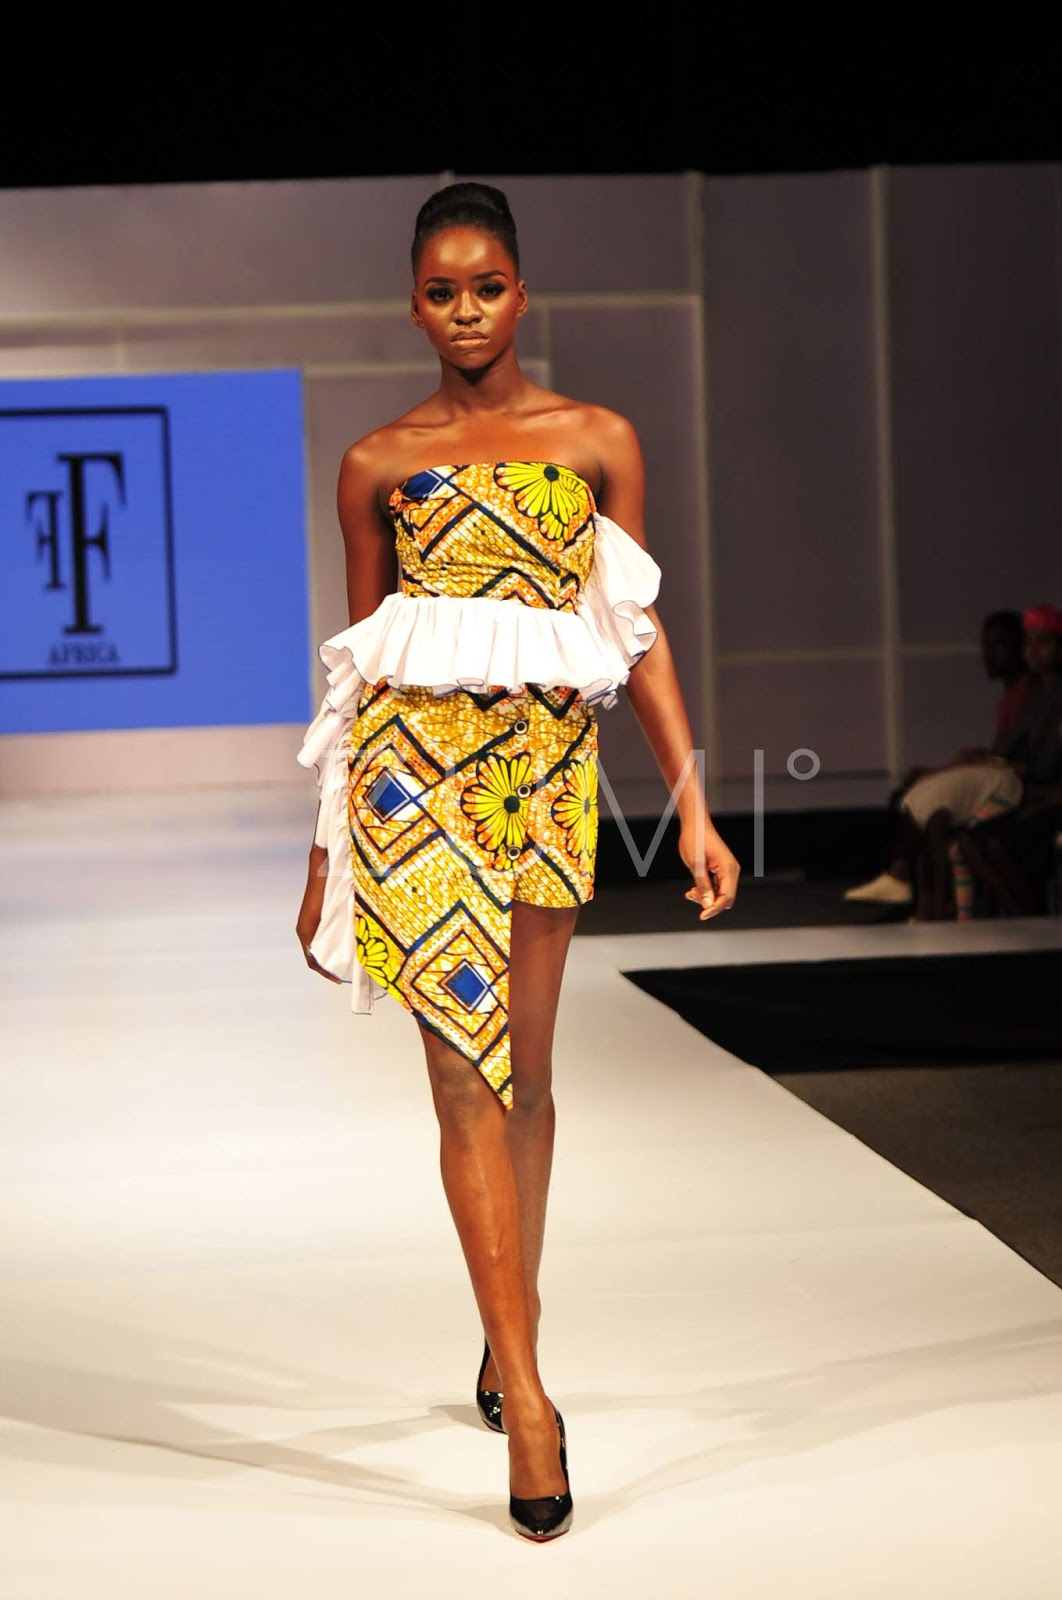 ankara styles for fashion parades, ankara for the runway, ankara fashion styles to rock to the runway fashion, Classic Ankara Styles For Fashion Parade Runway